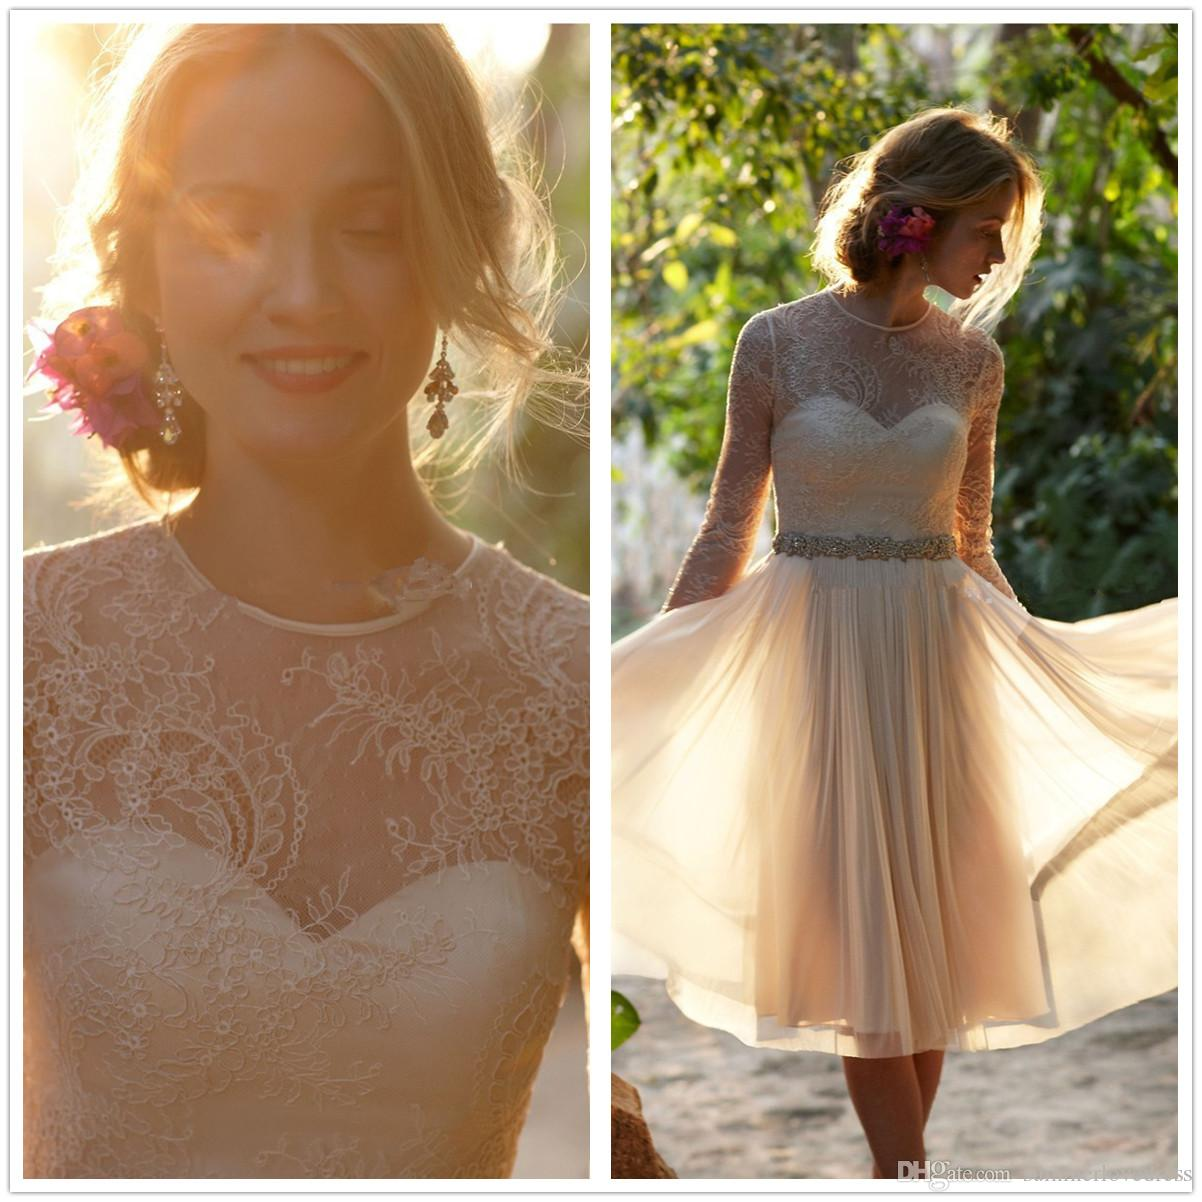 2017 New Long Sleeves Lace Short Bridesmaid Dresses Chiffon Ruffles Beaded Waistband Knee Length Wedding Party Dresses With Buttons